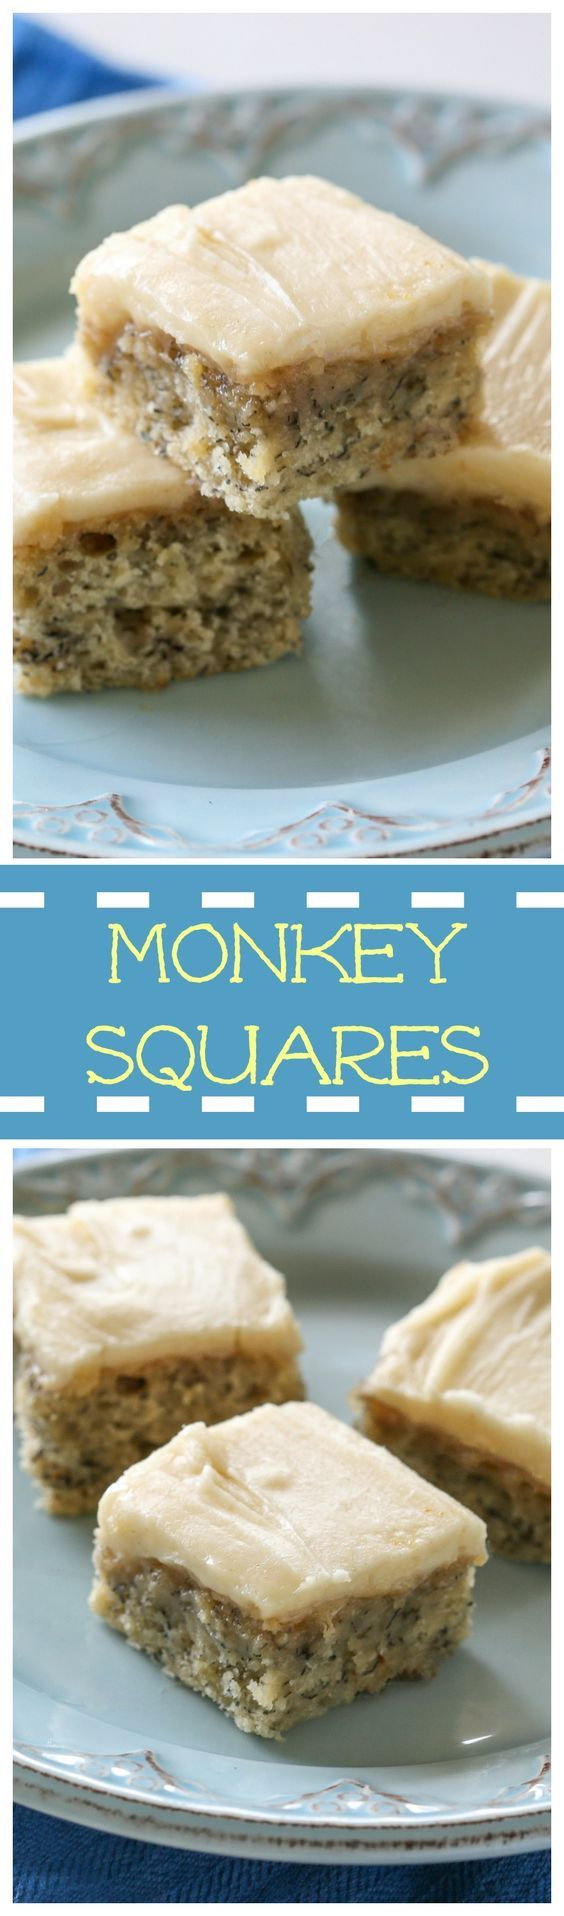 Monkey Squares - a moist banana bread bar with a browned butter frosting! the-girl-who-ate-everything.com: